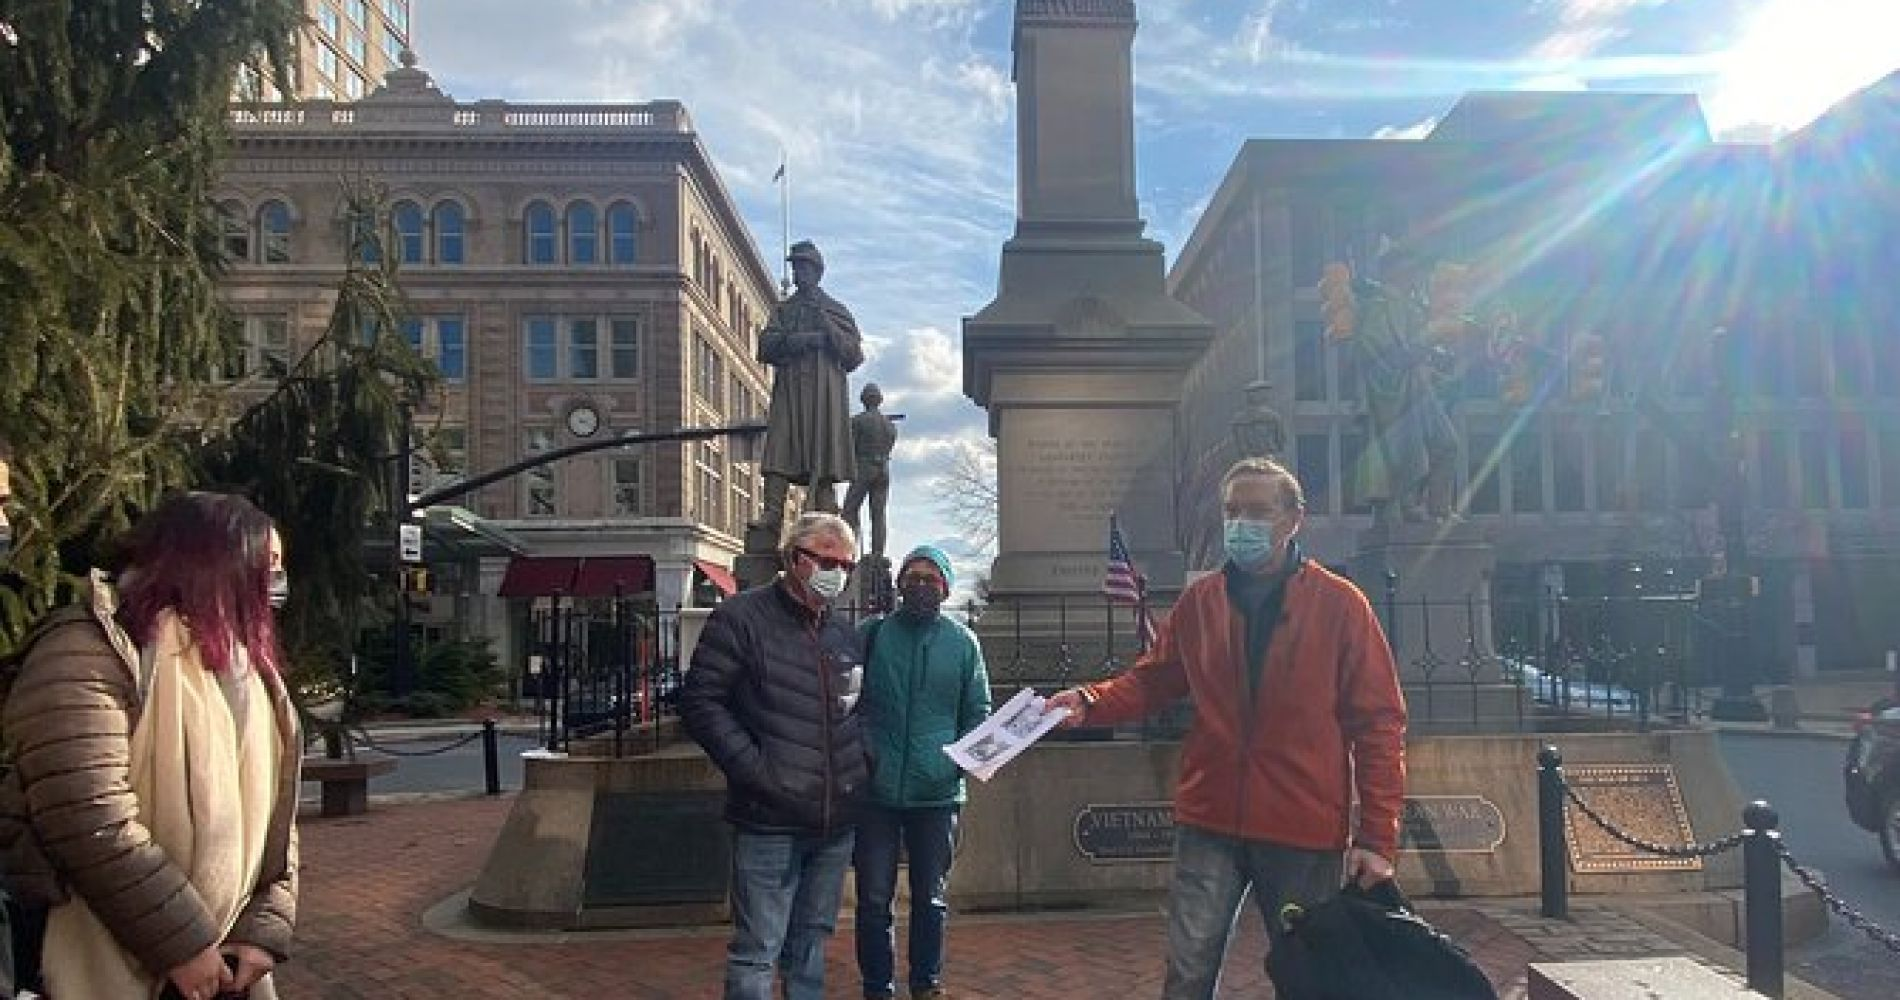 Lancaster History and Craft Beer Walk